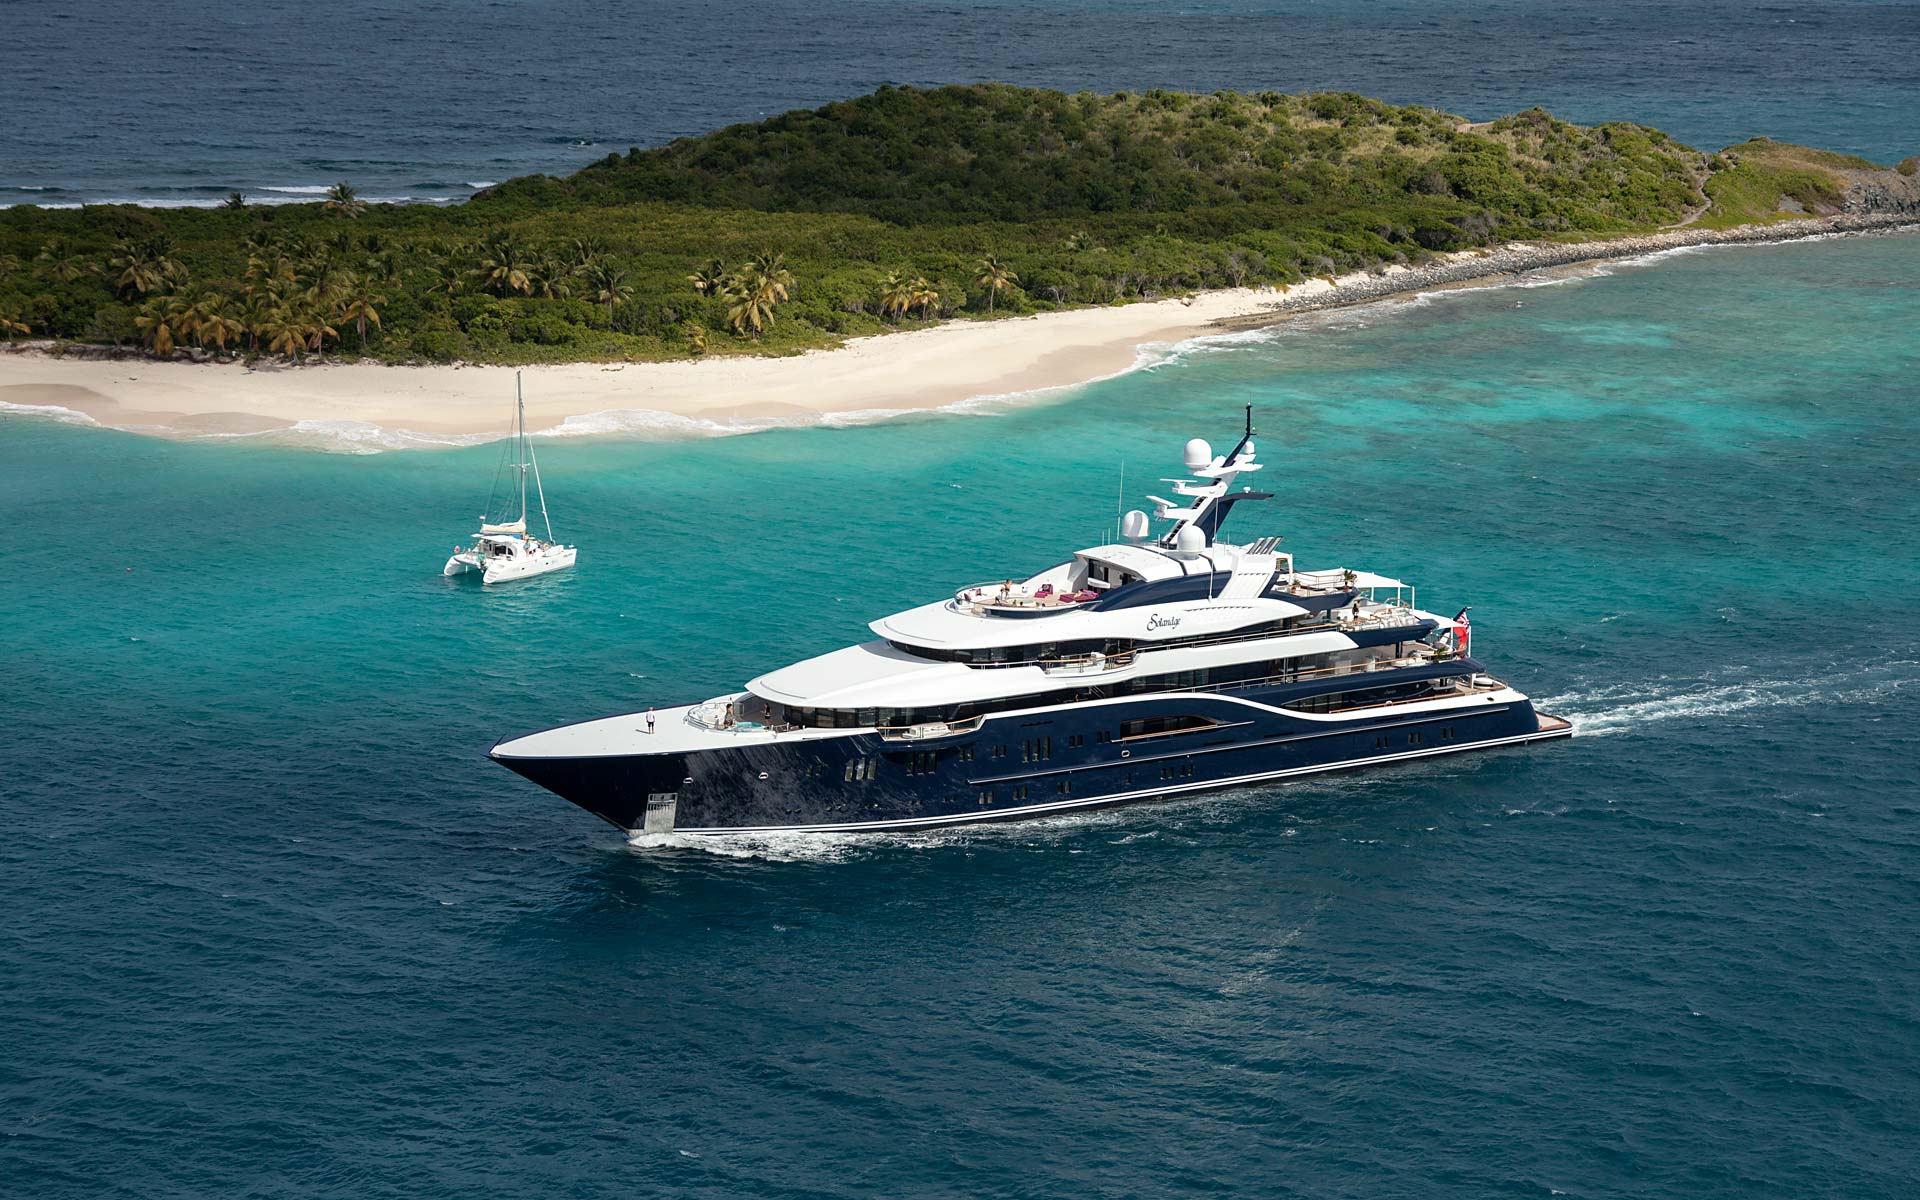 http://wejetlovers.wehomeowners.com/wp-content/uploads/2016/07/Yacht-Photo_005.jpg